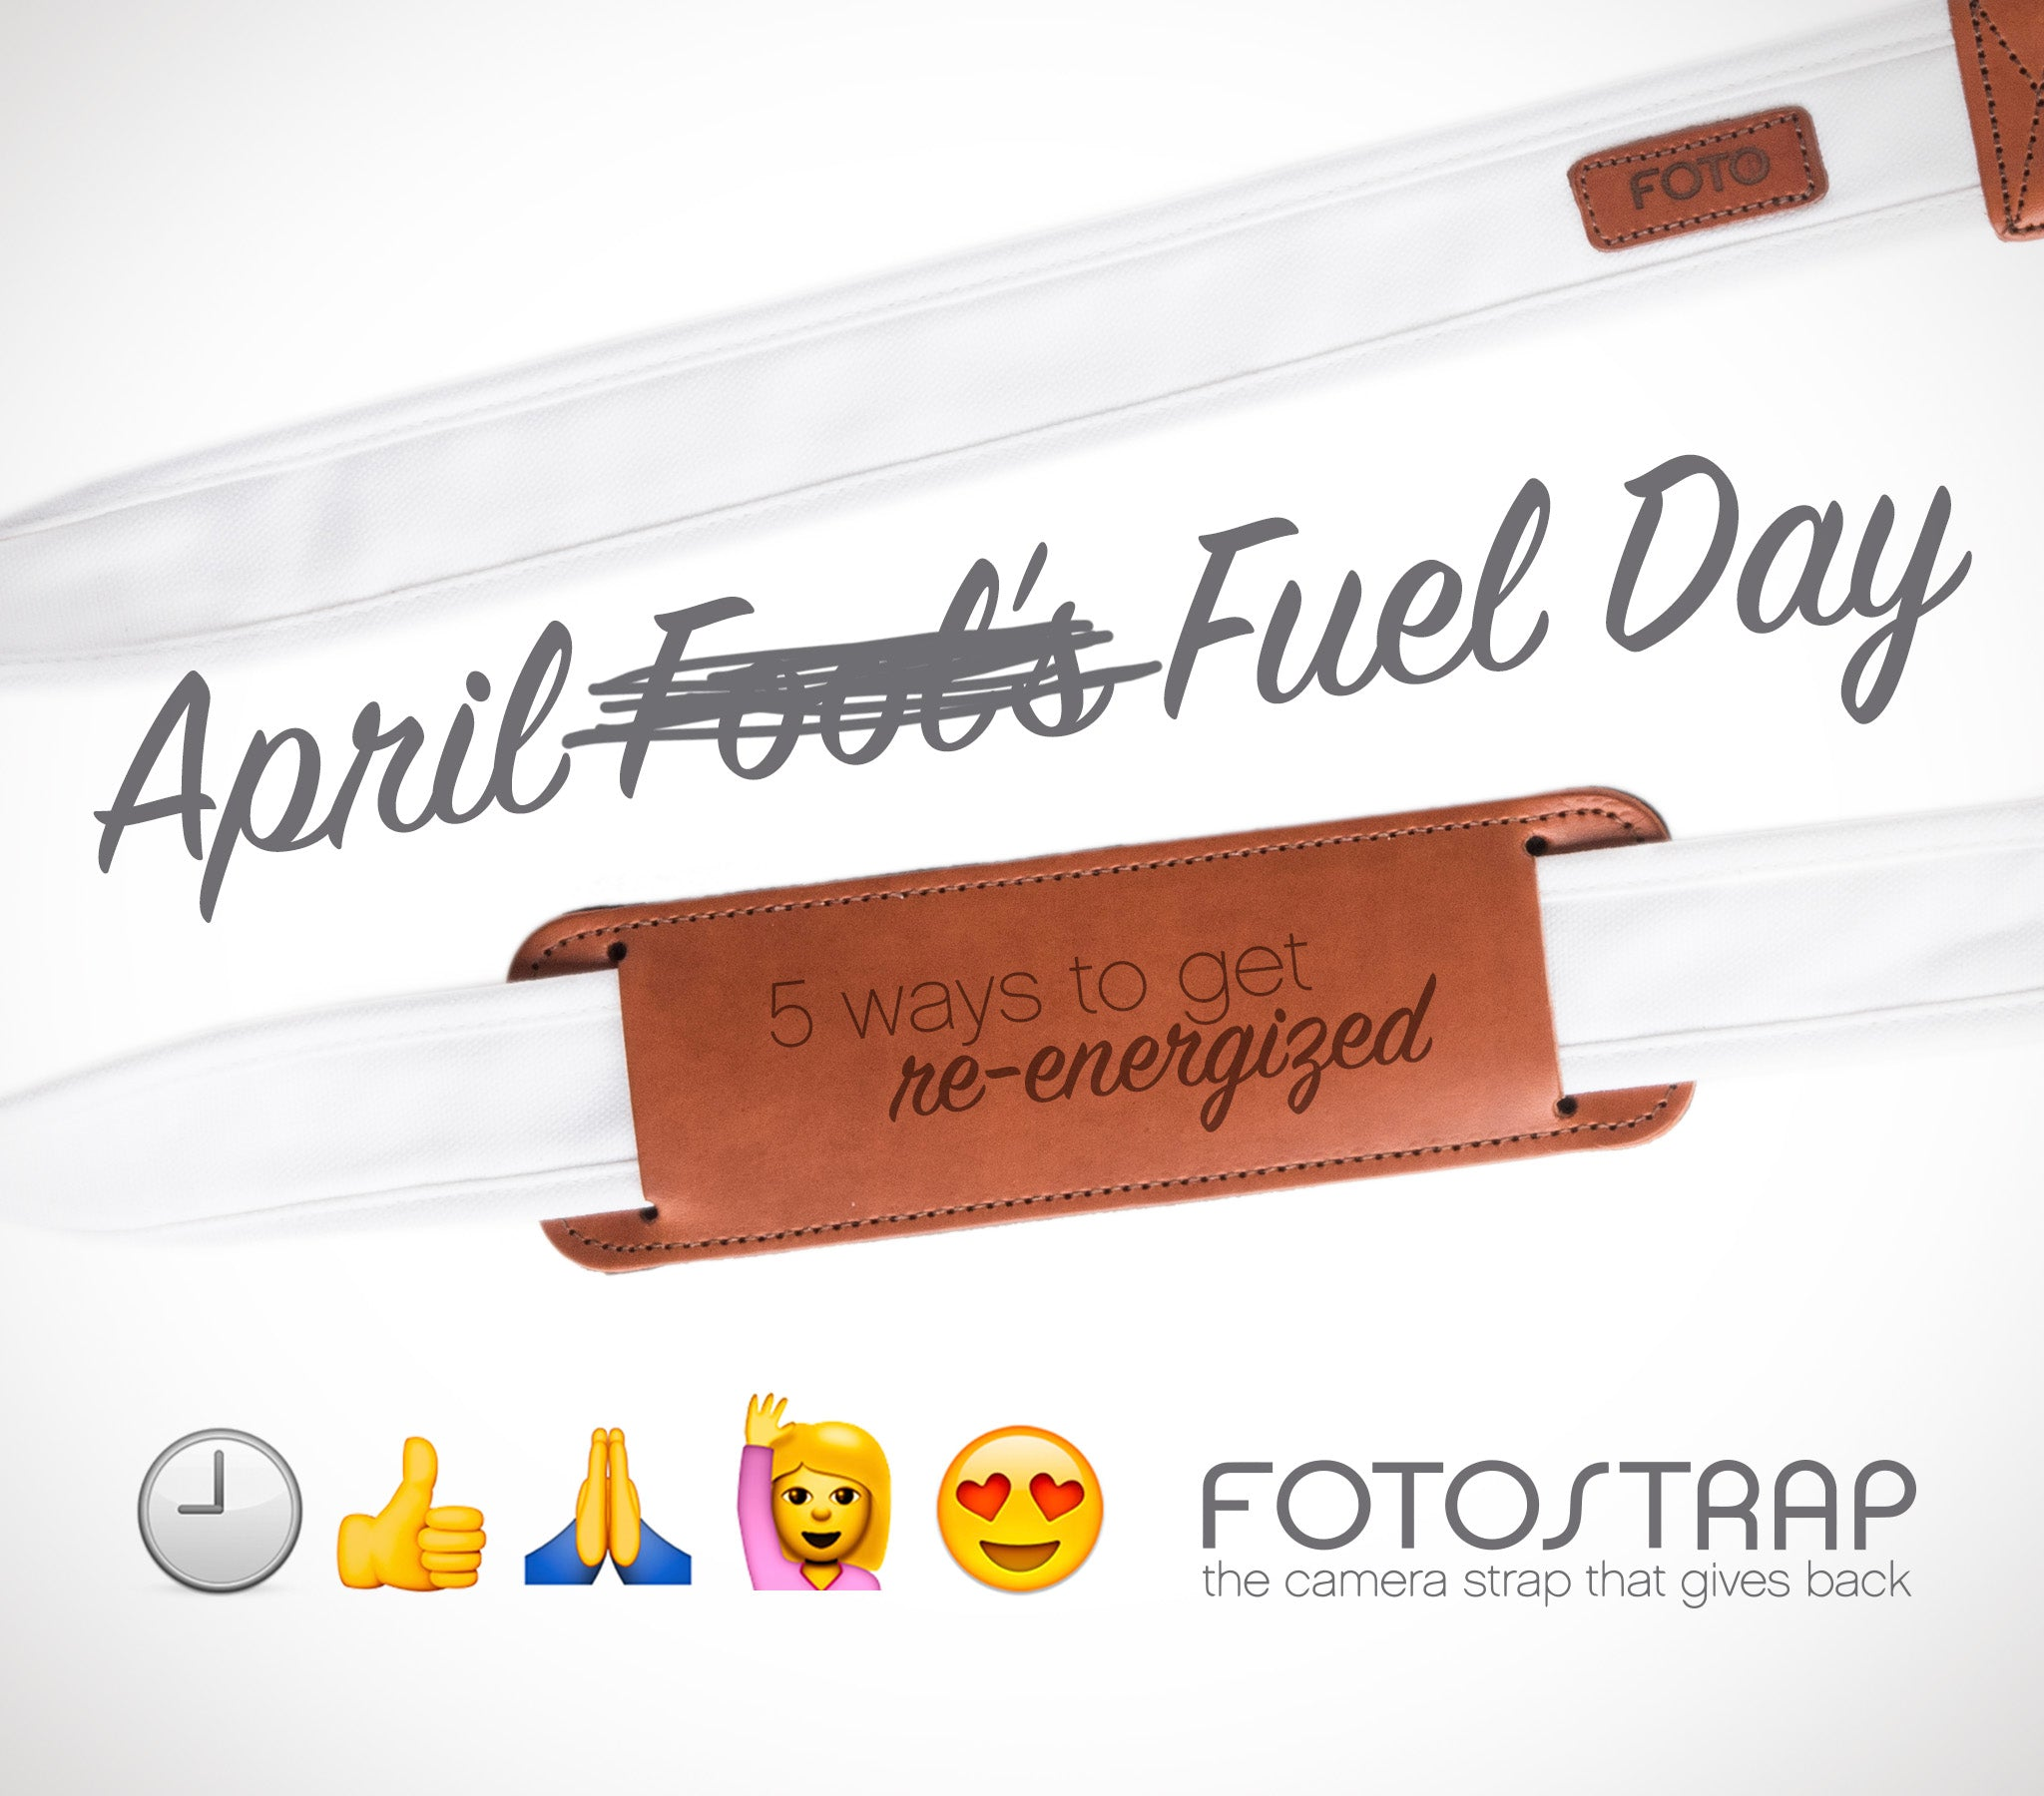 April Fuel Day | FOTO Blog